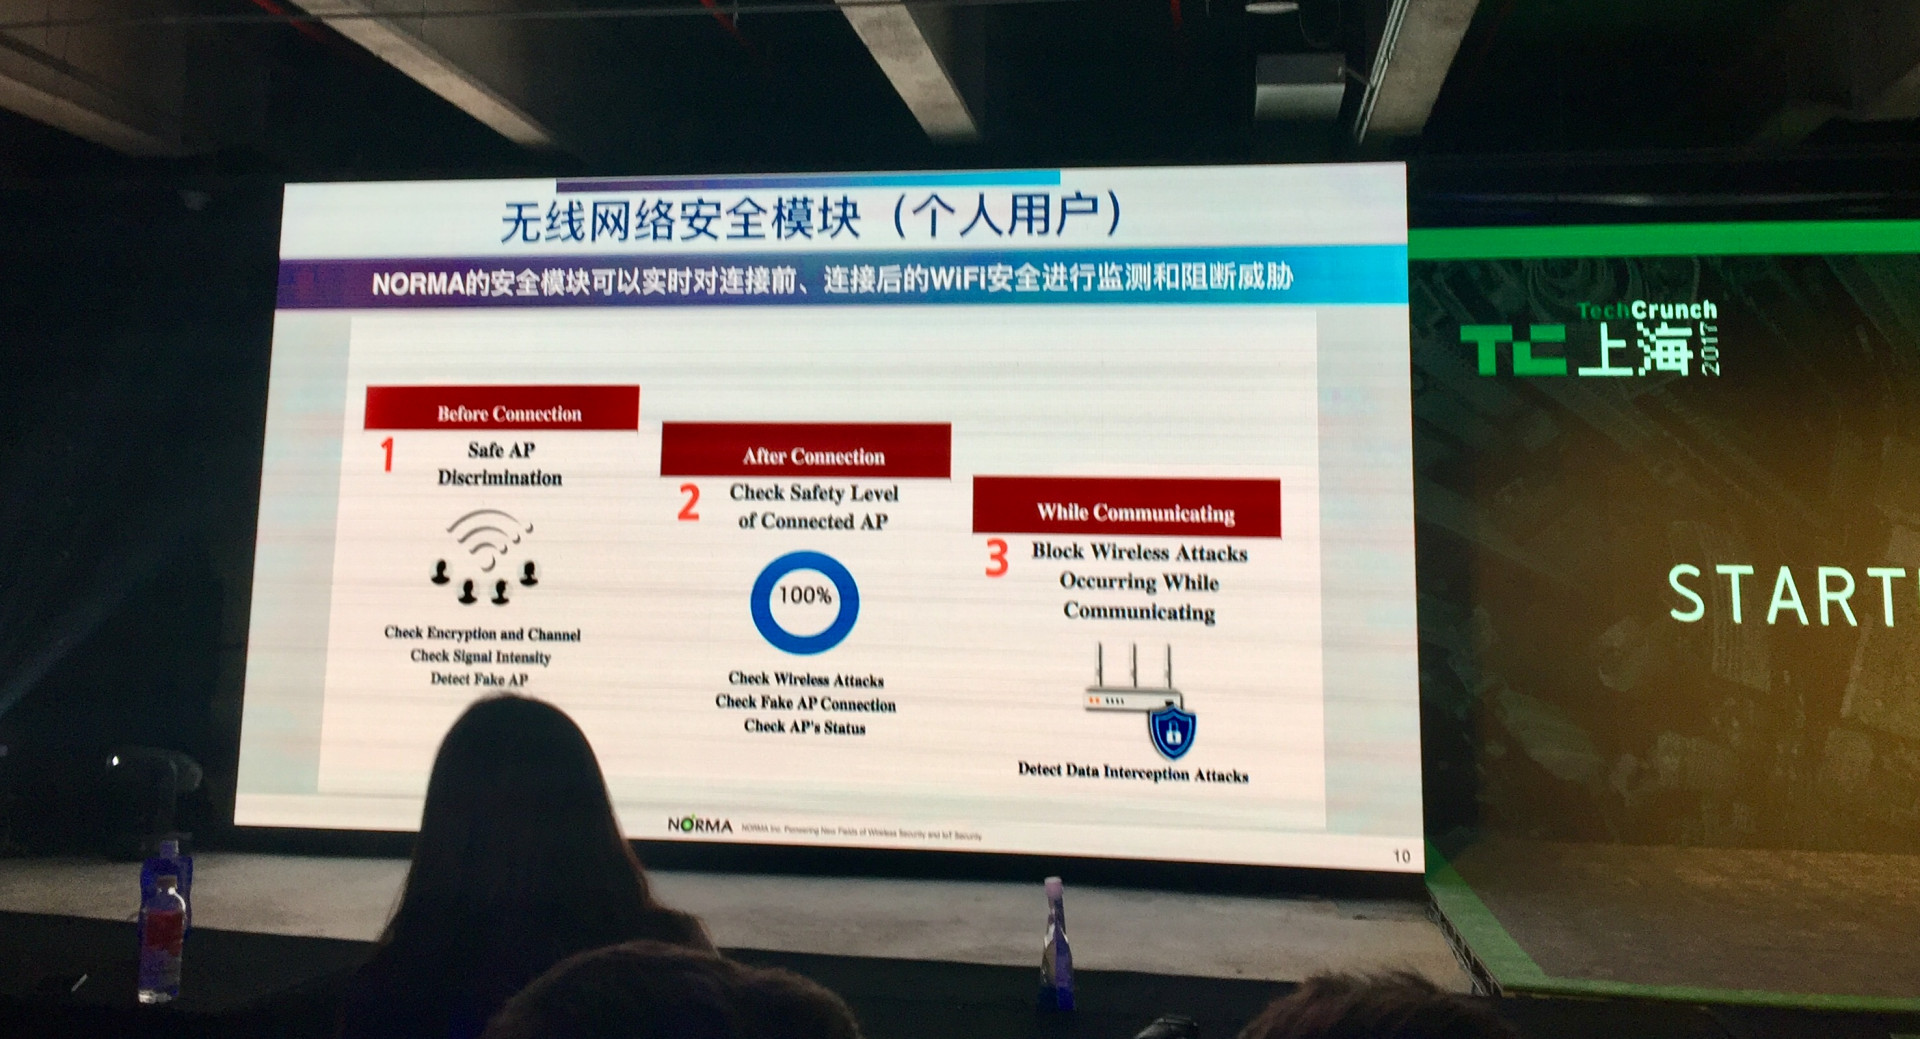 Presentation by IoT security firm Norma (Image credit: TechNode)